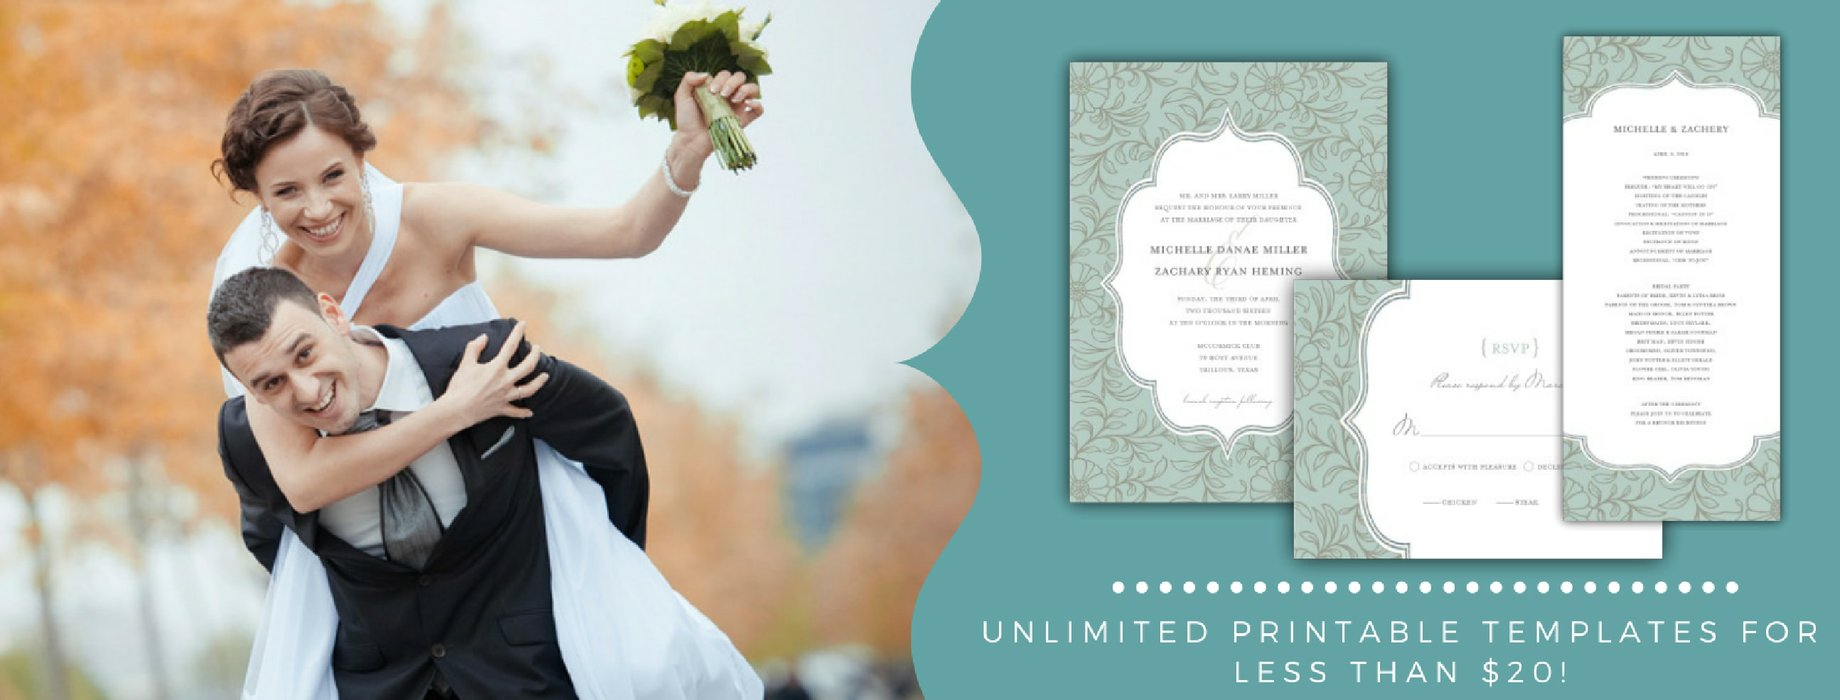 The Printable Wedding's profile image